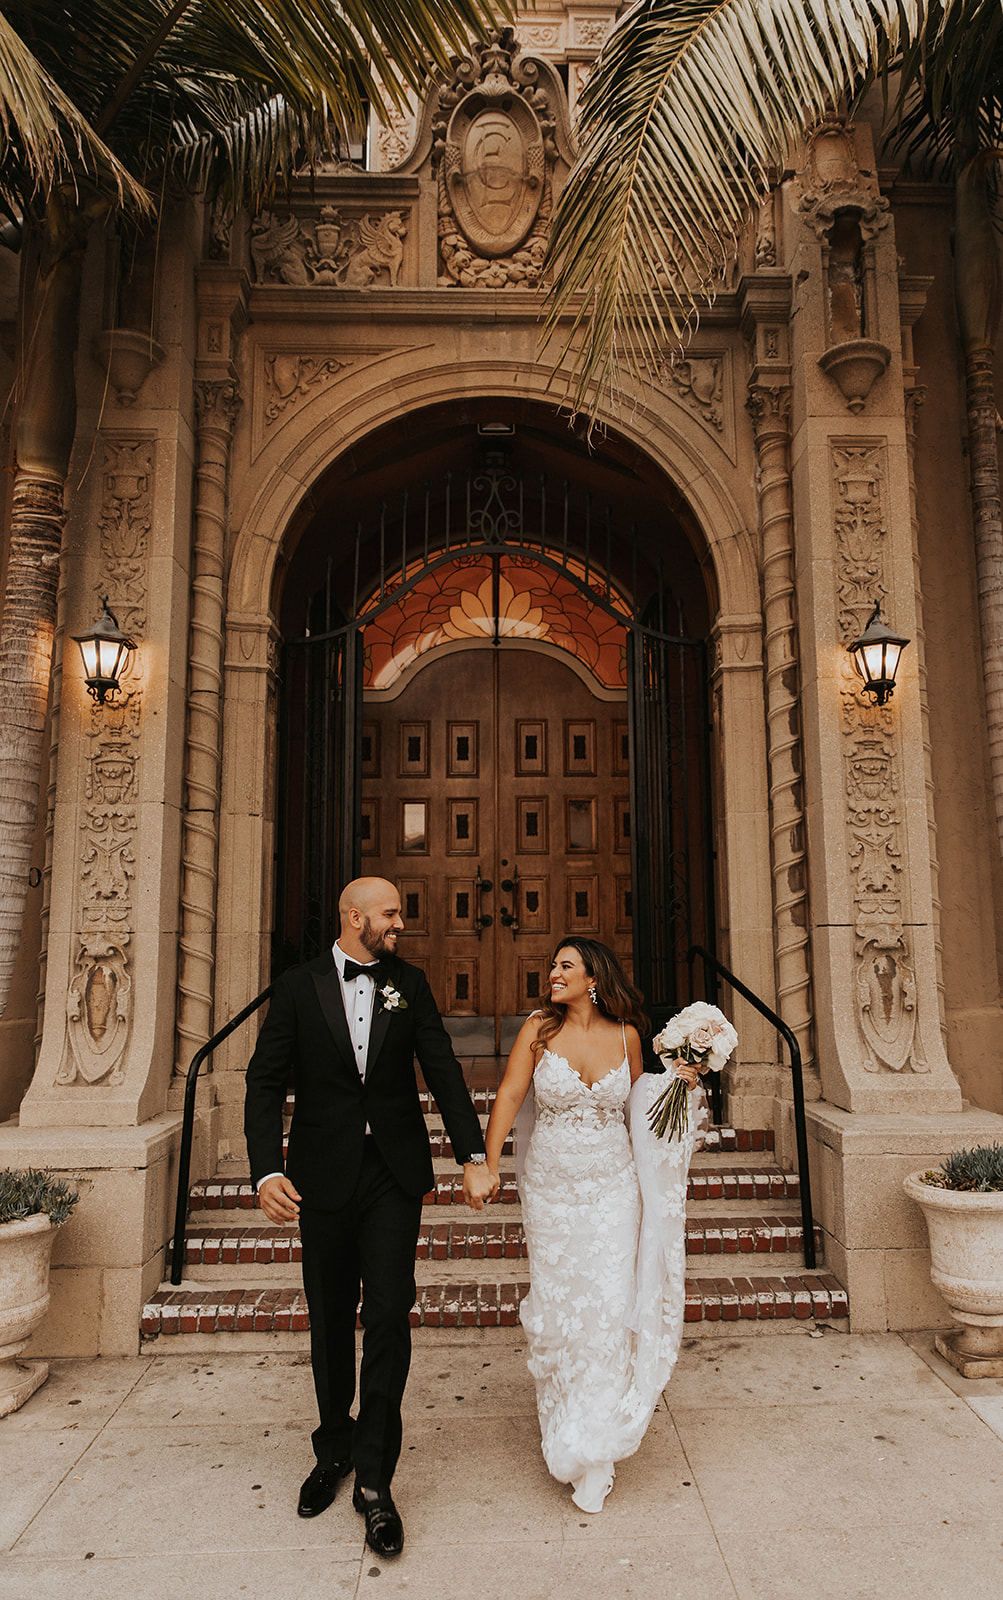 Bride and groom married at Ebell of Long Beach